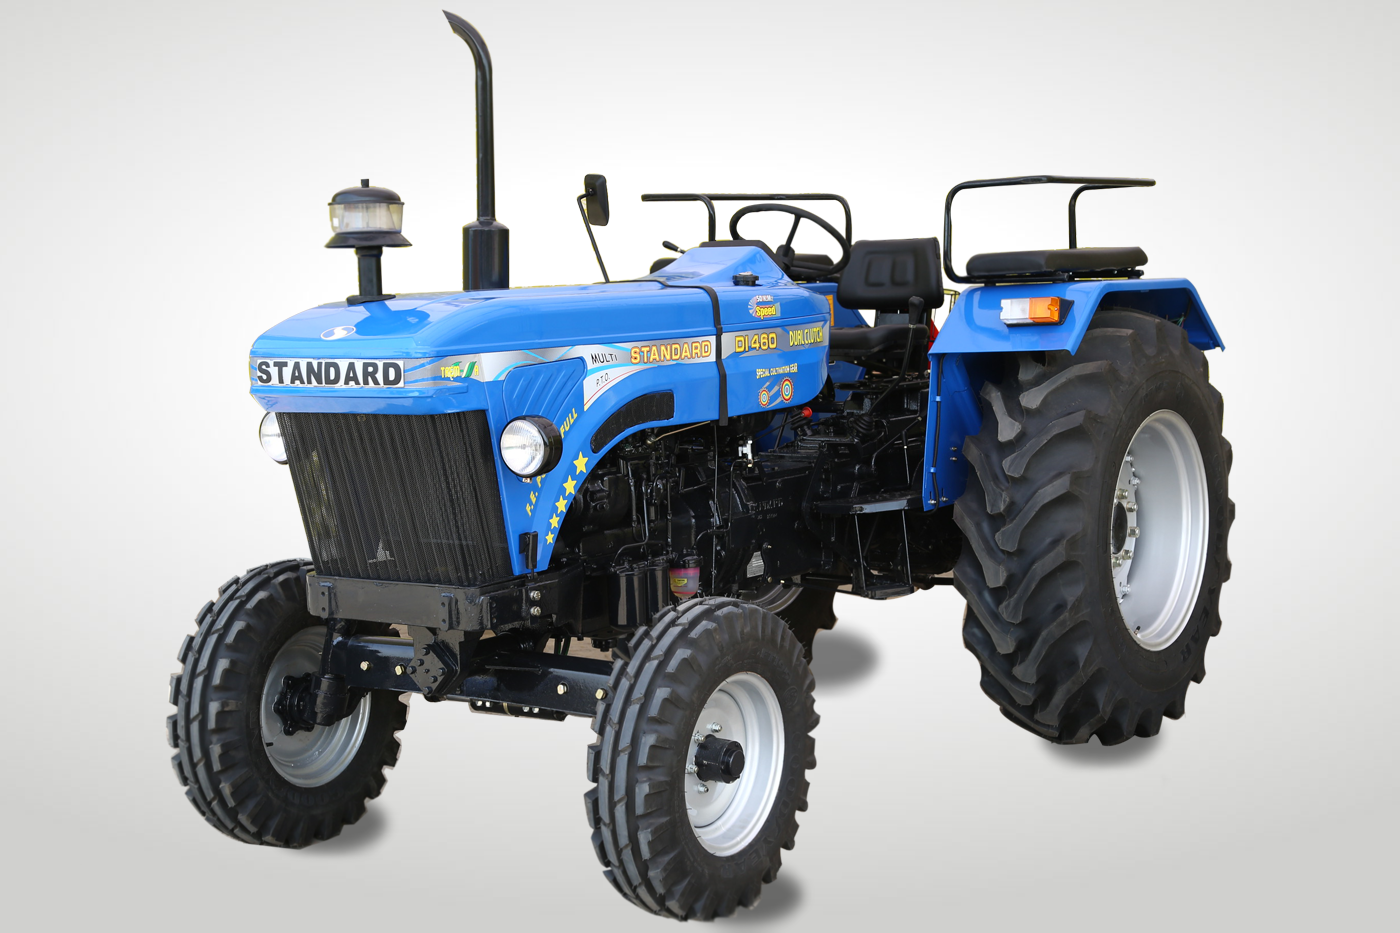 https://images.tractorgyan.com/uploads/540/Standerd-DI-460-tractorgyan.png